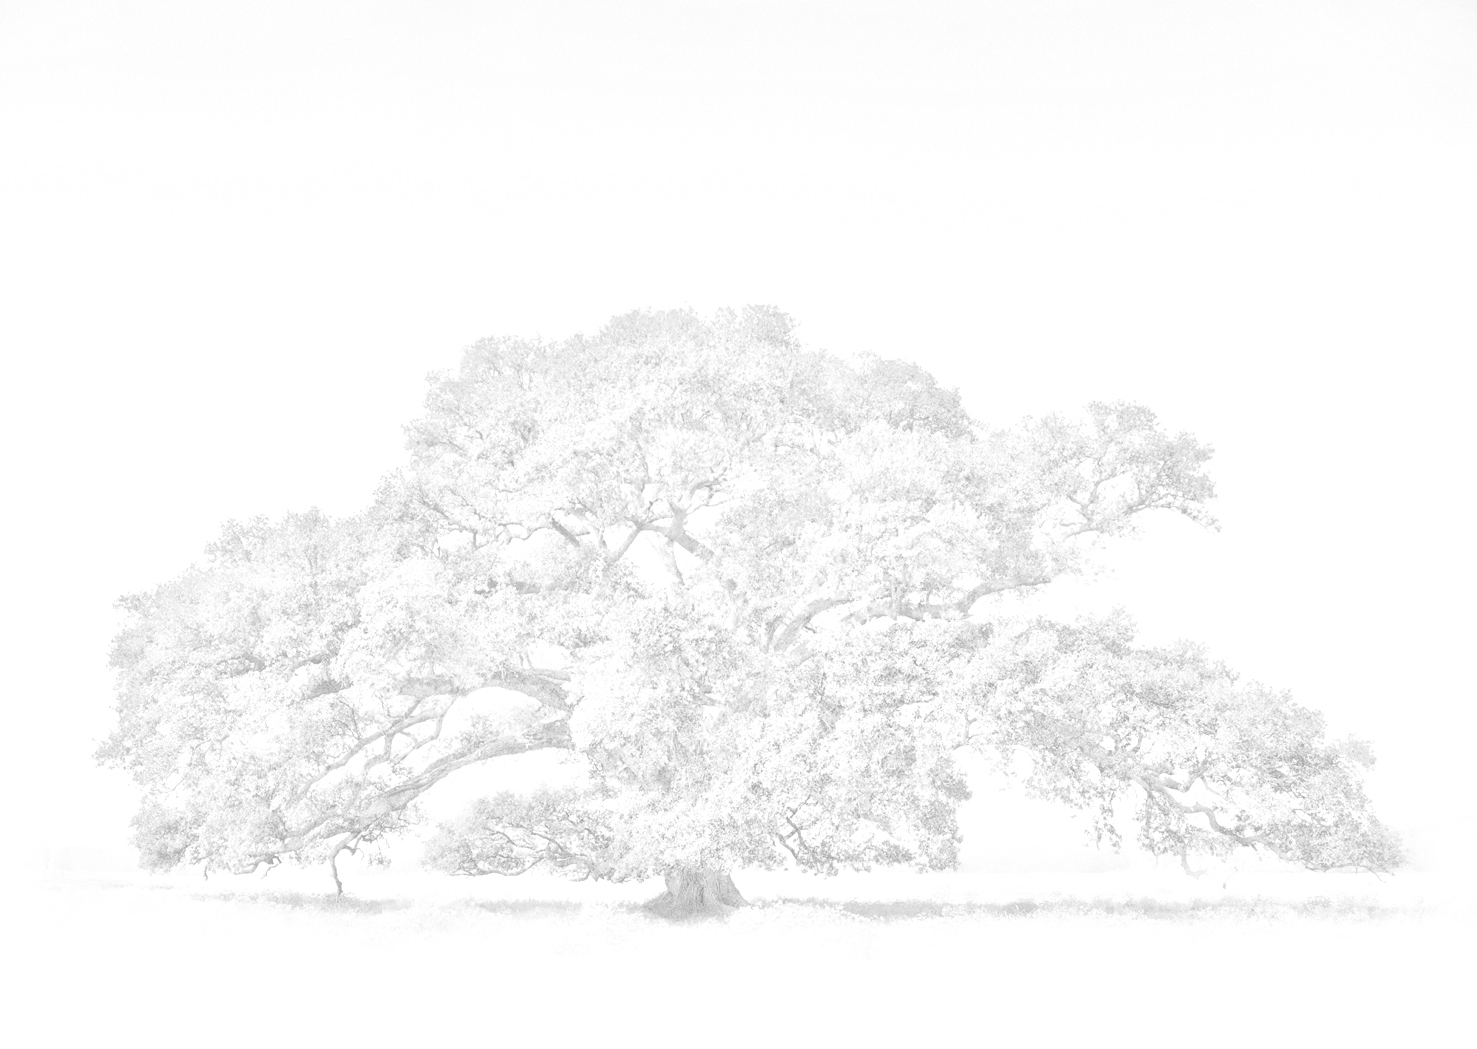 Illustration of lone oak tree in black and white